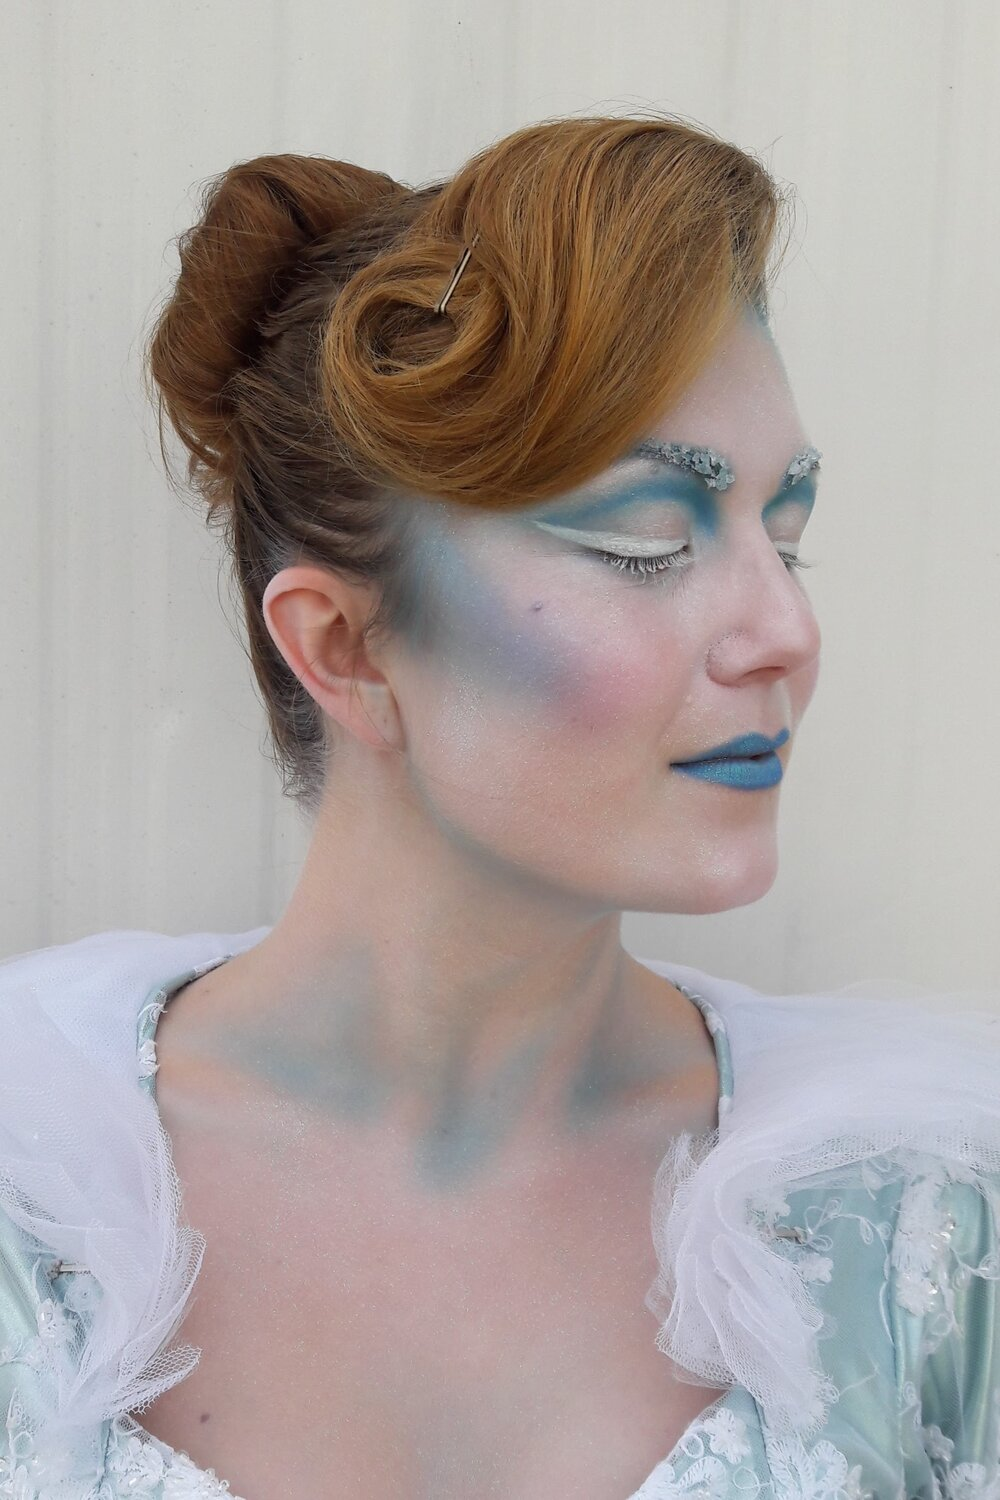 Holiday in the Park, 2016 Six Flags Magic Mountain Stilt Walker: Holly Dawn Makeup provided by: Premier Products Inc. and Ice Effects